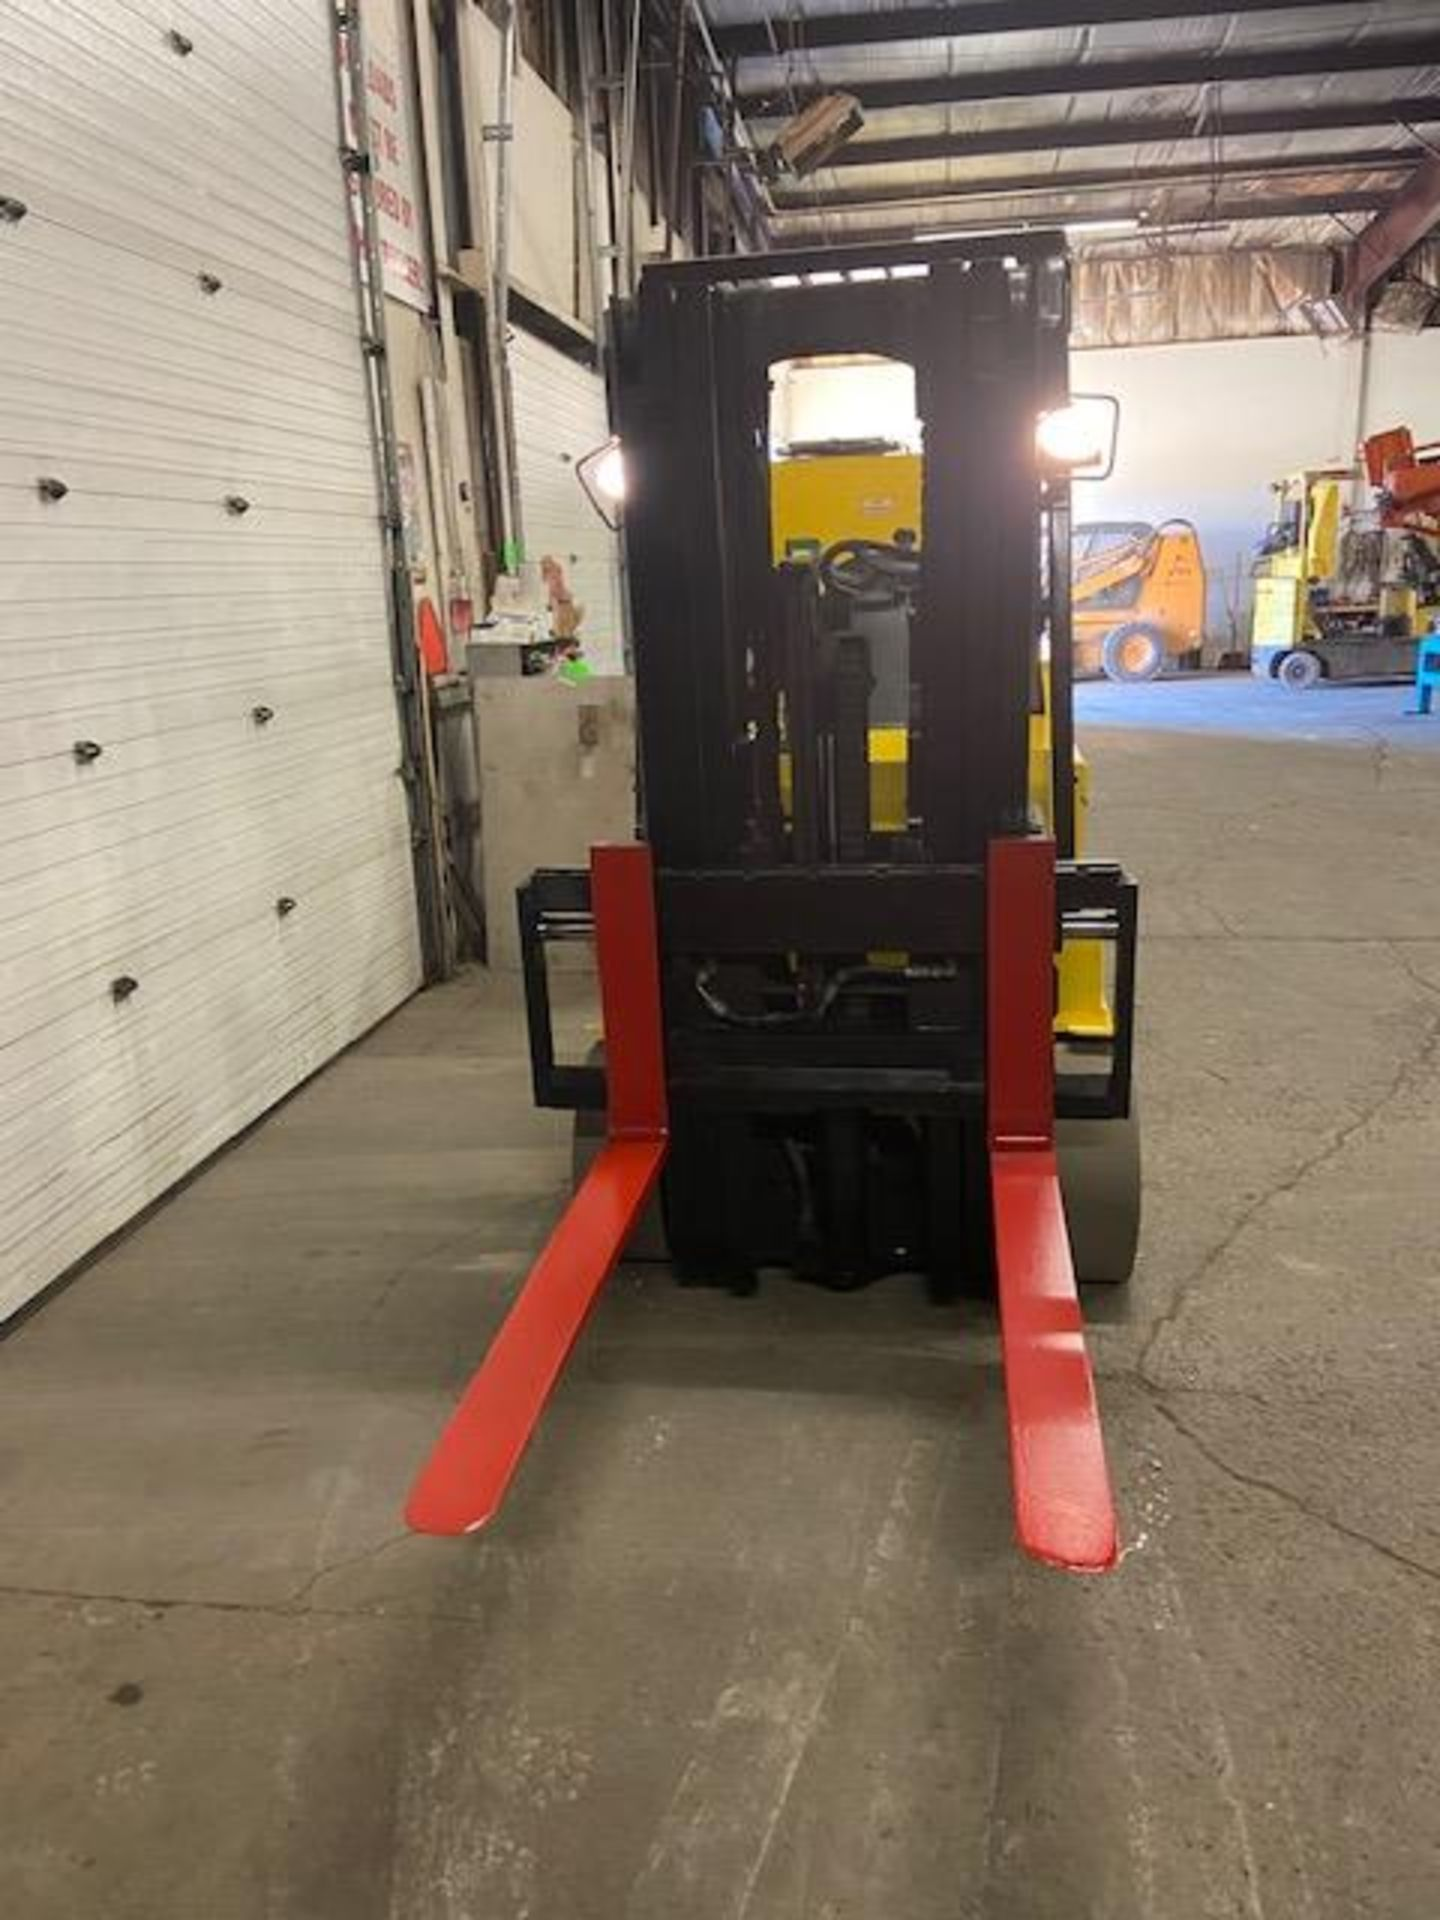 FREE CUSTOMS - 2008 Hyster 8000lbs Capacity Forklift Electric with sideshift and 3 stage mast - Image 2 of 2